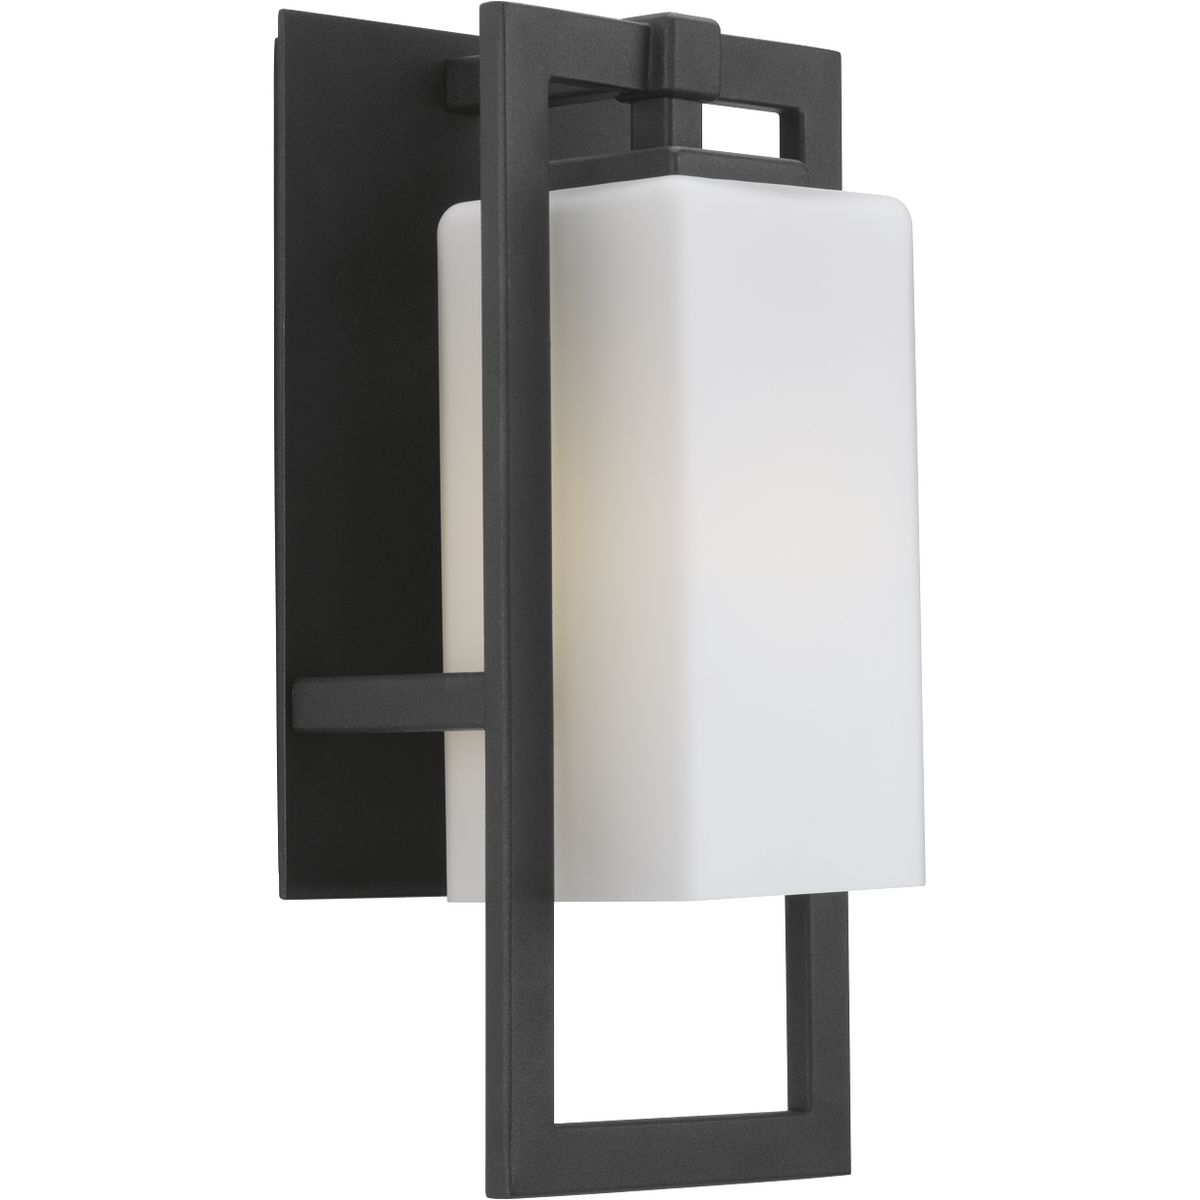 Jack 1-100W MED WALL SCONCE BLACK